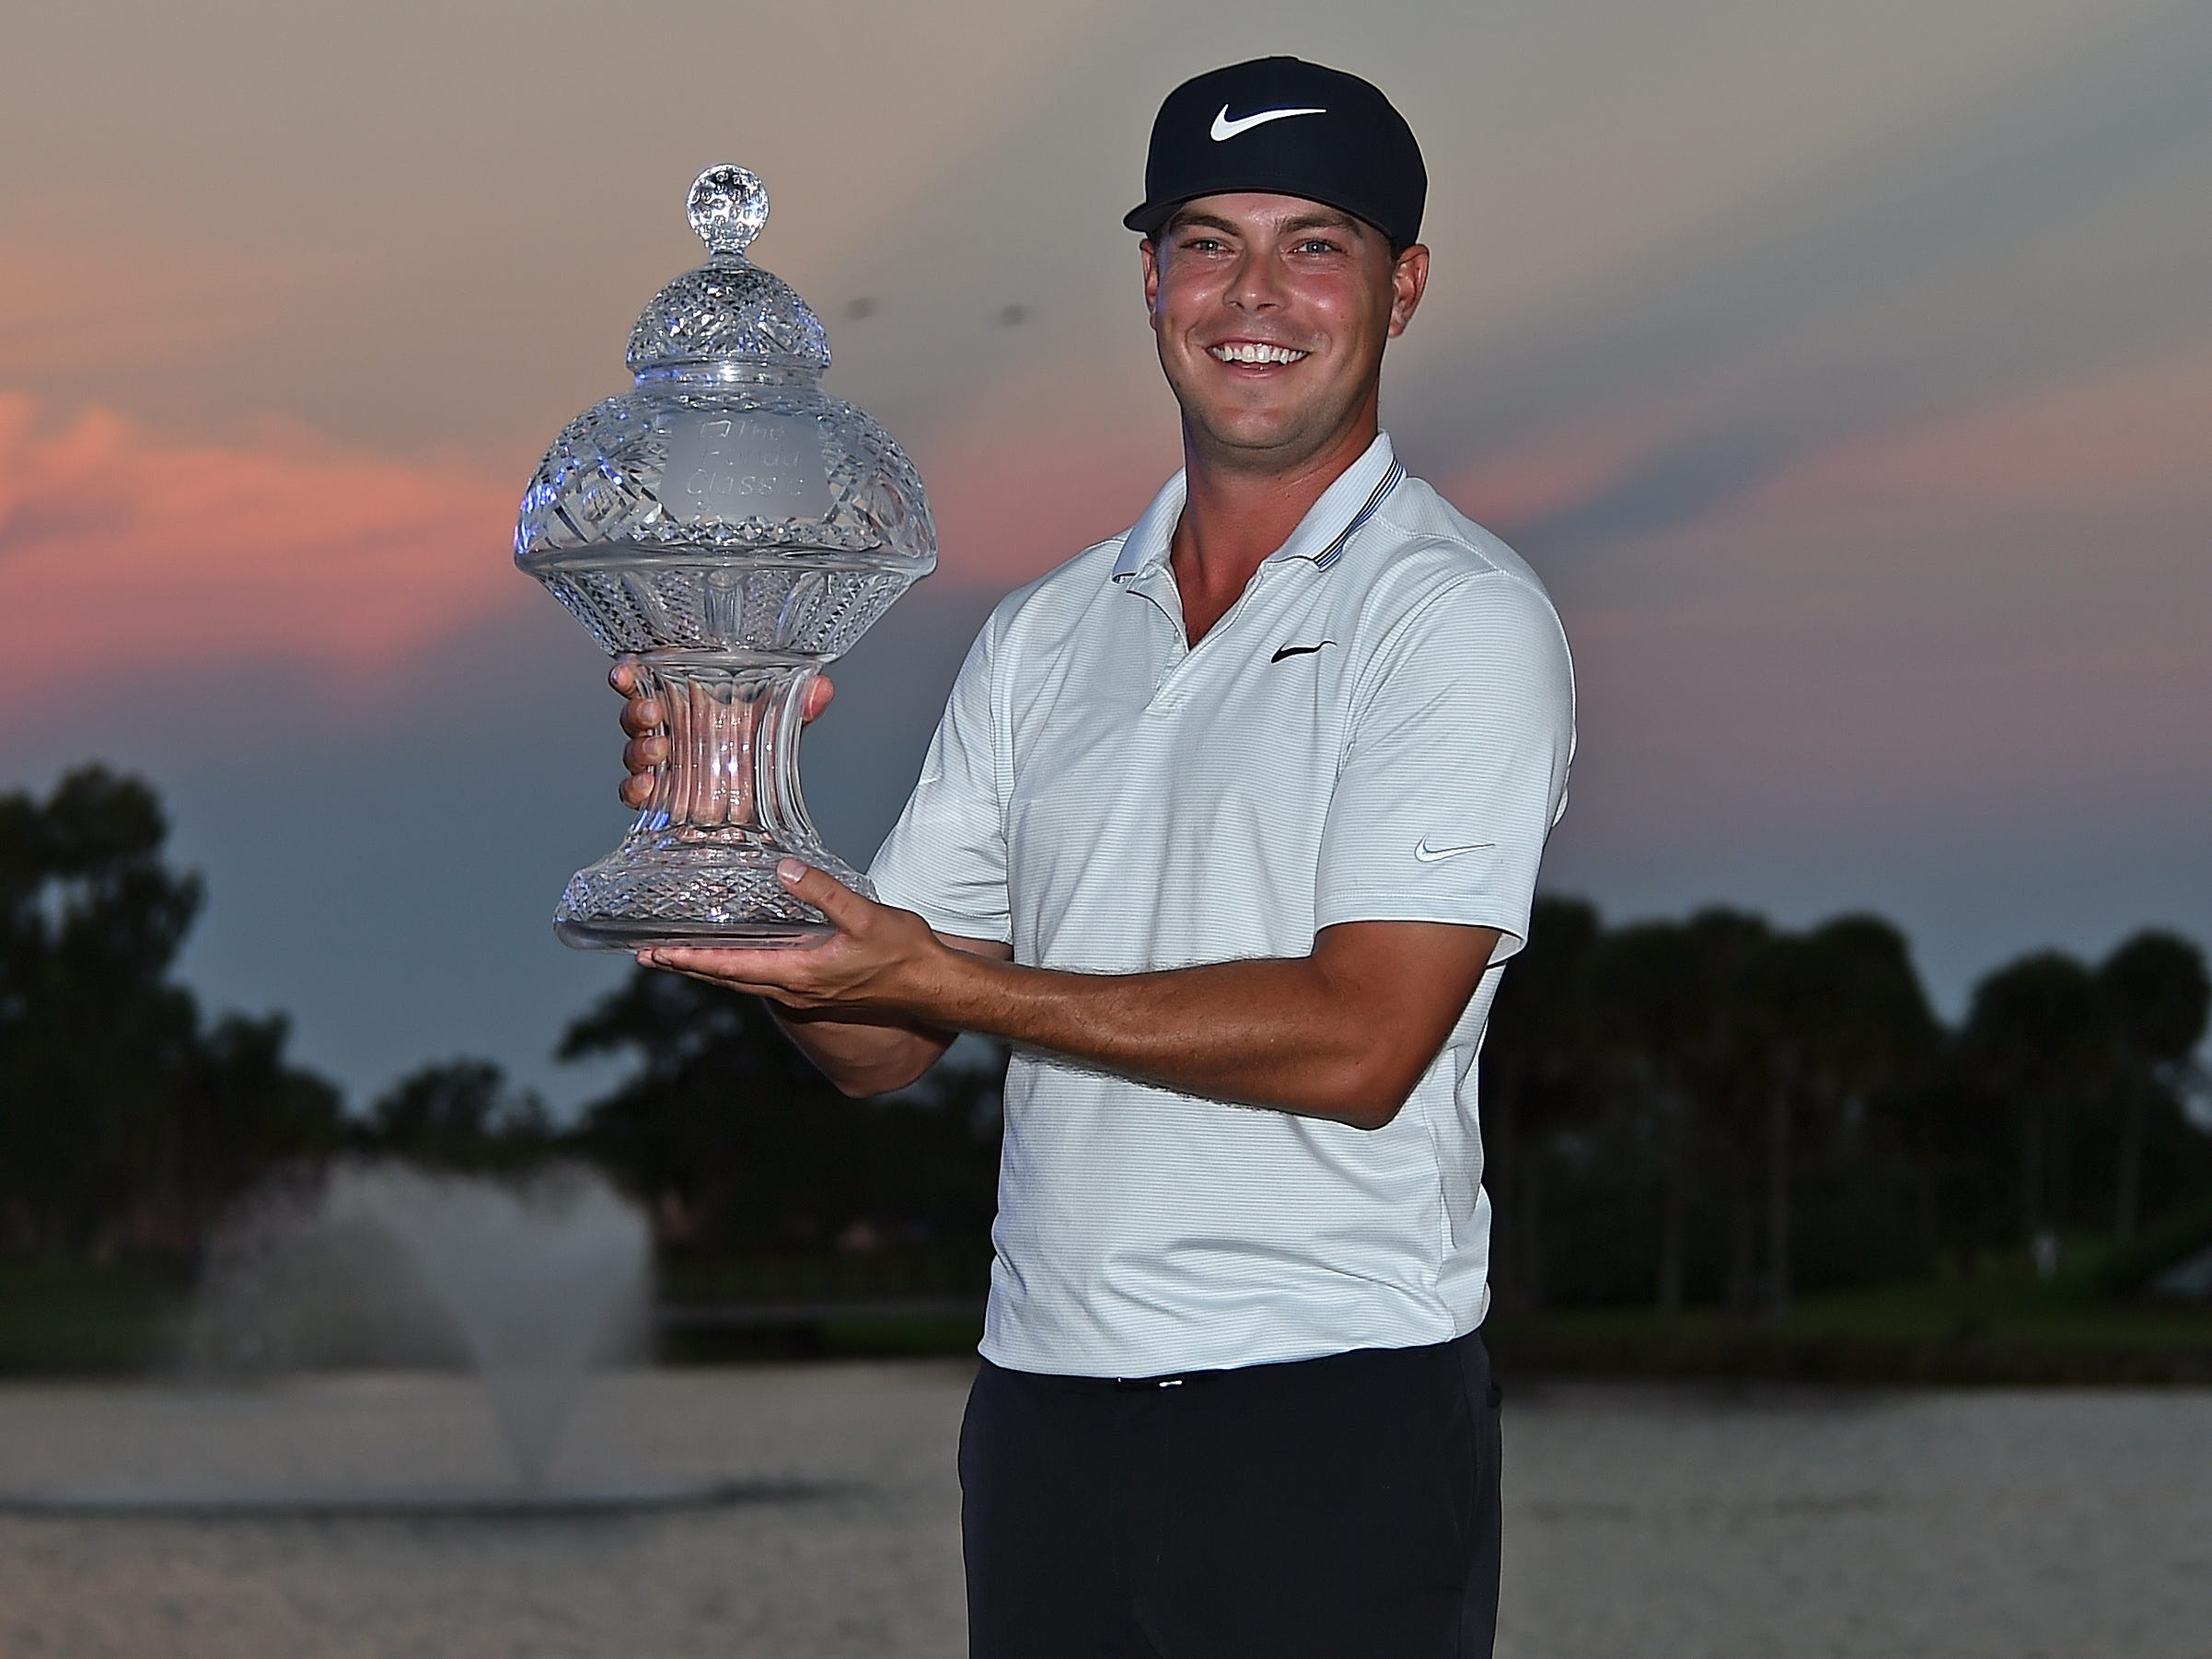 March 3: Keith Mitchell celebrates his first career PGA Tour win the The Honda Classic at PGA National in Palm Beach Gardens, Fla.